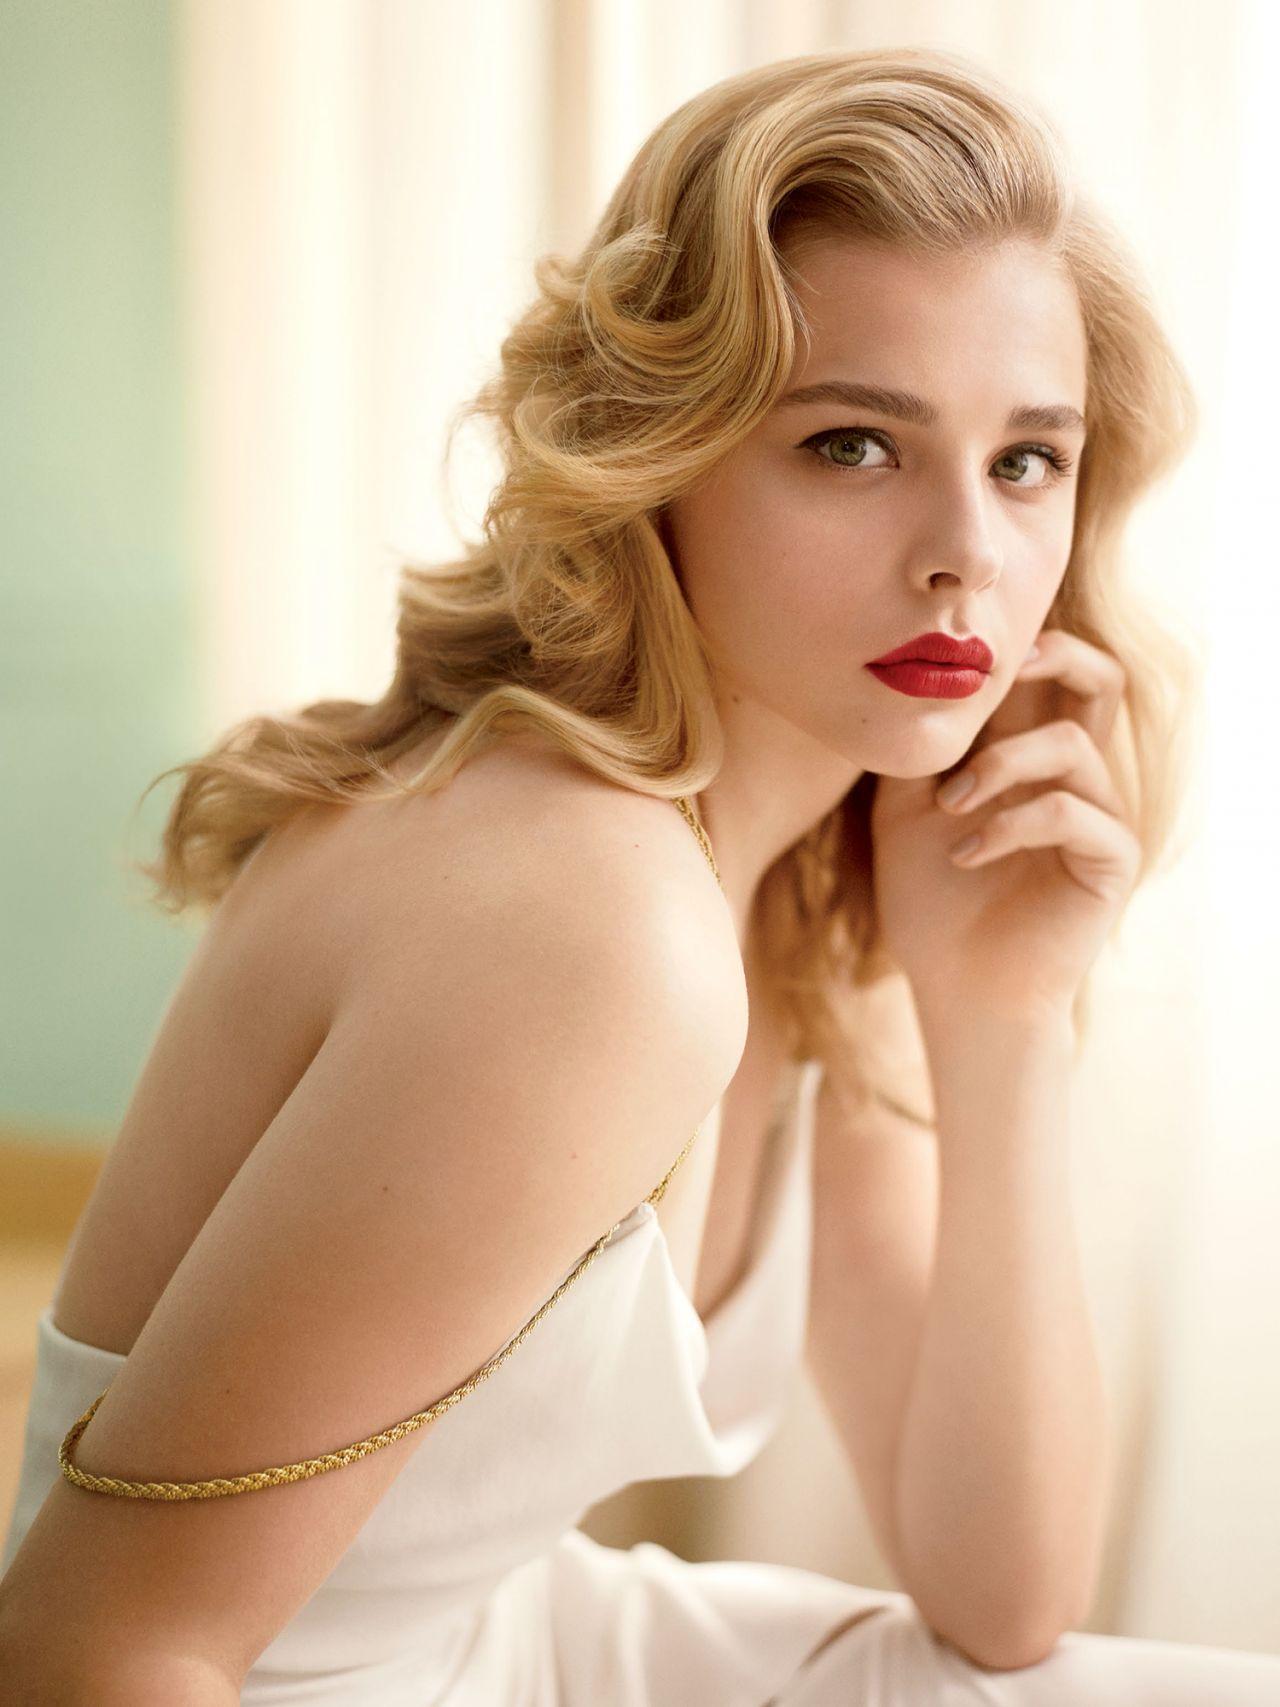 Chloe Moretz - Photoshoot for Allure Magazine September 2014